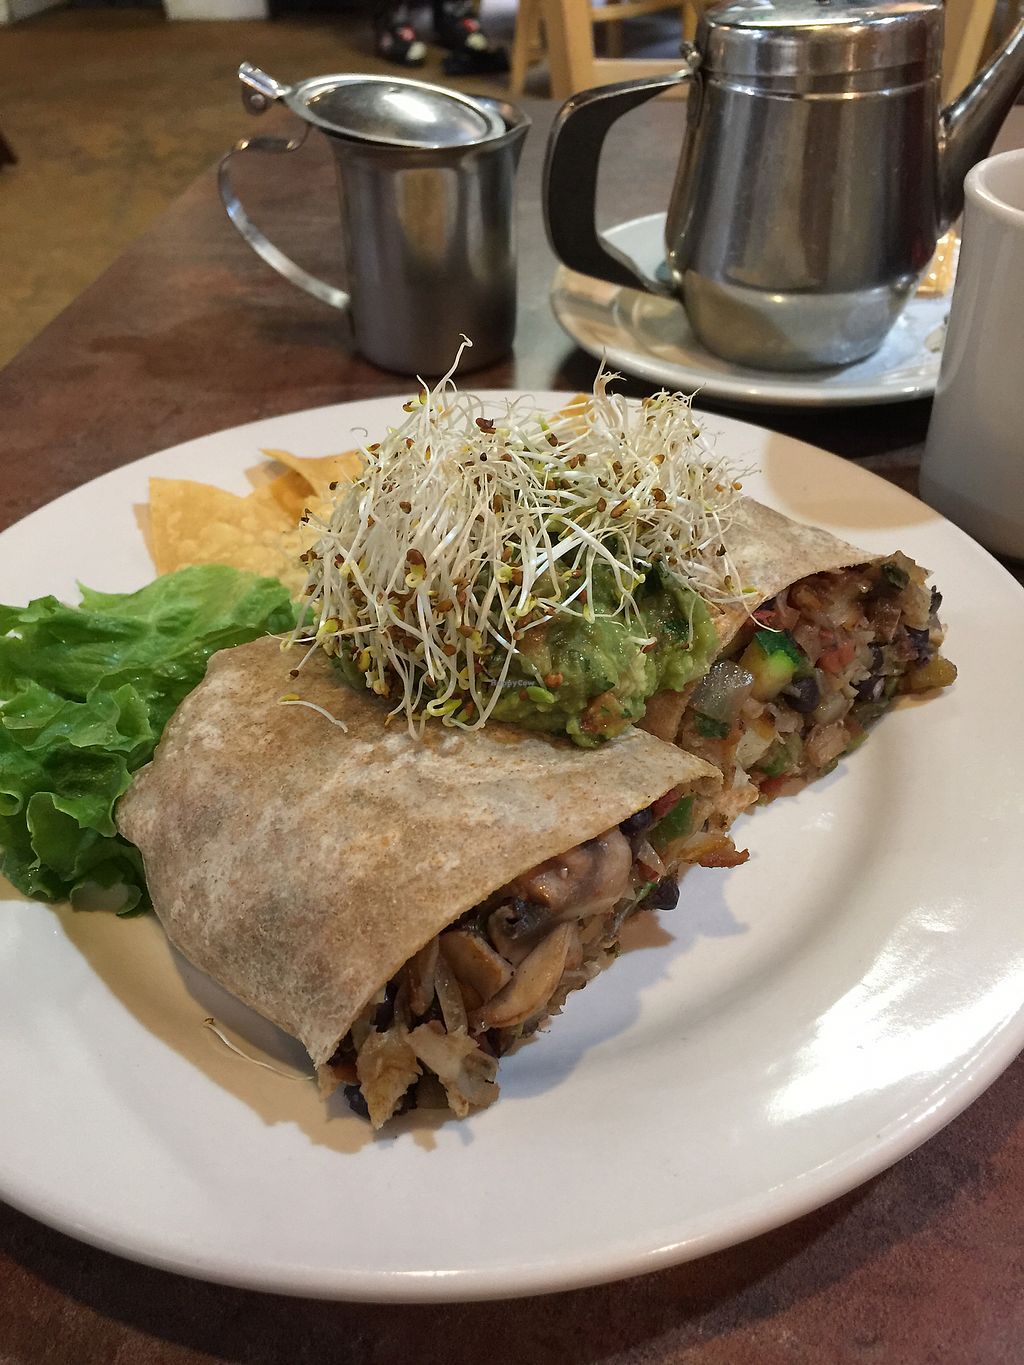 """Photo of Driftwood Cafe  by <a href=""""/members/profile/R12345"""">R12345</a> <br/>Vegan Burrito <br/> January 9, 2018  - <a href='/contact/abuse/image/36222/344583'>Report</a>"""